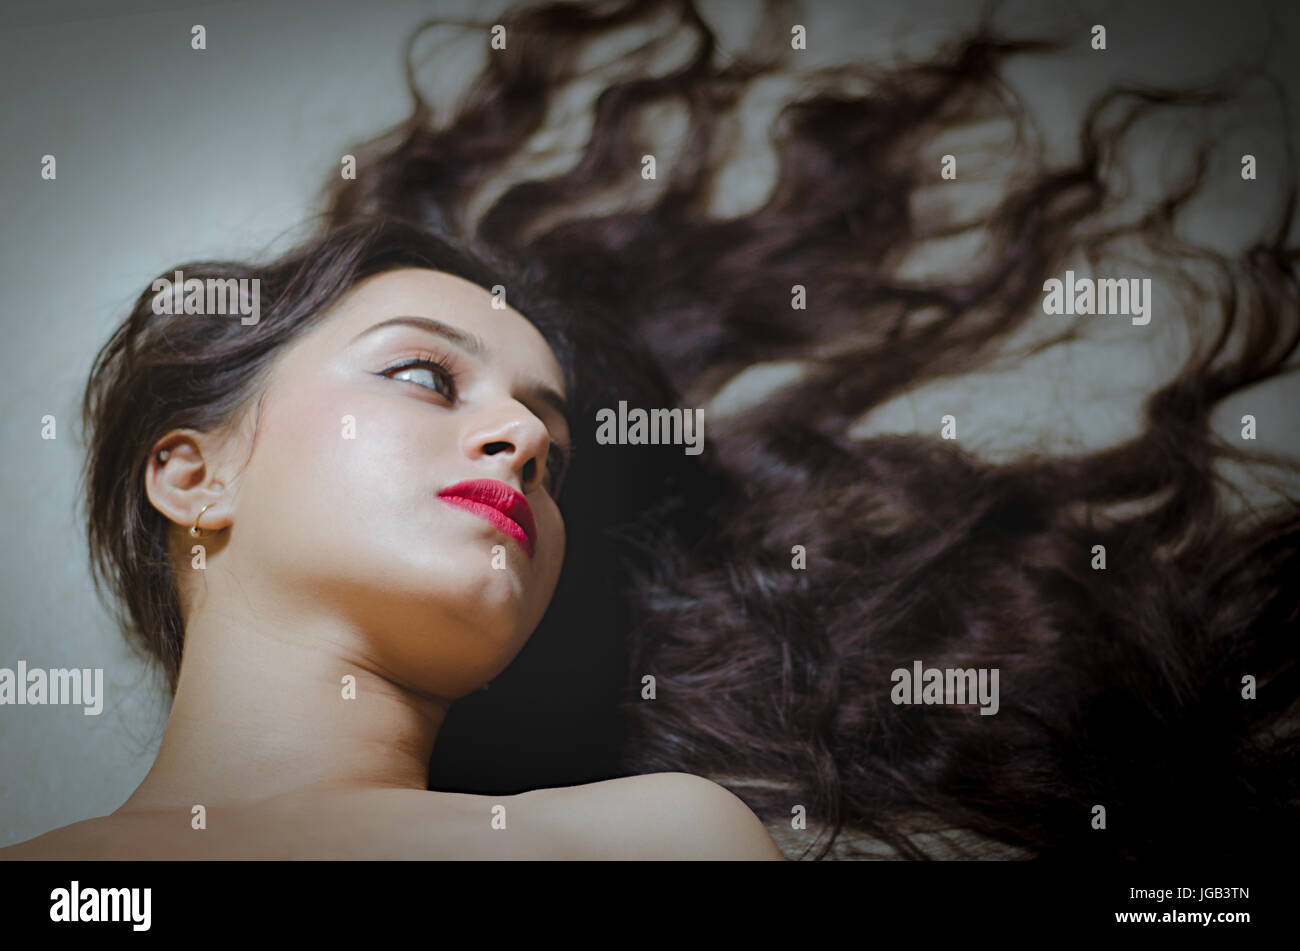 concept shoot with a beautiful Indian model with long hair at a studio - Stock Image